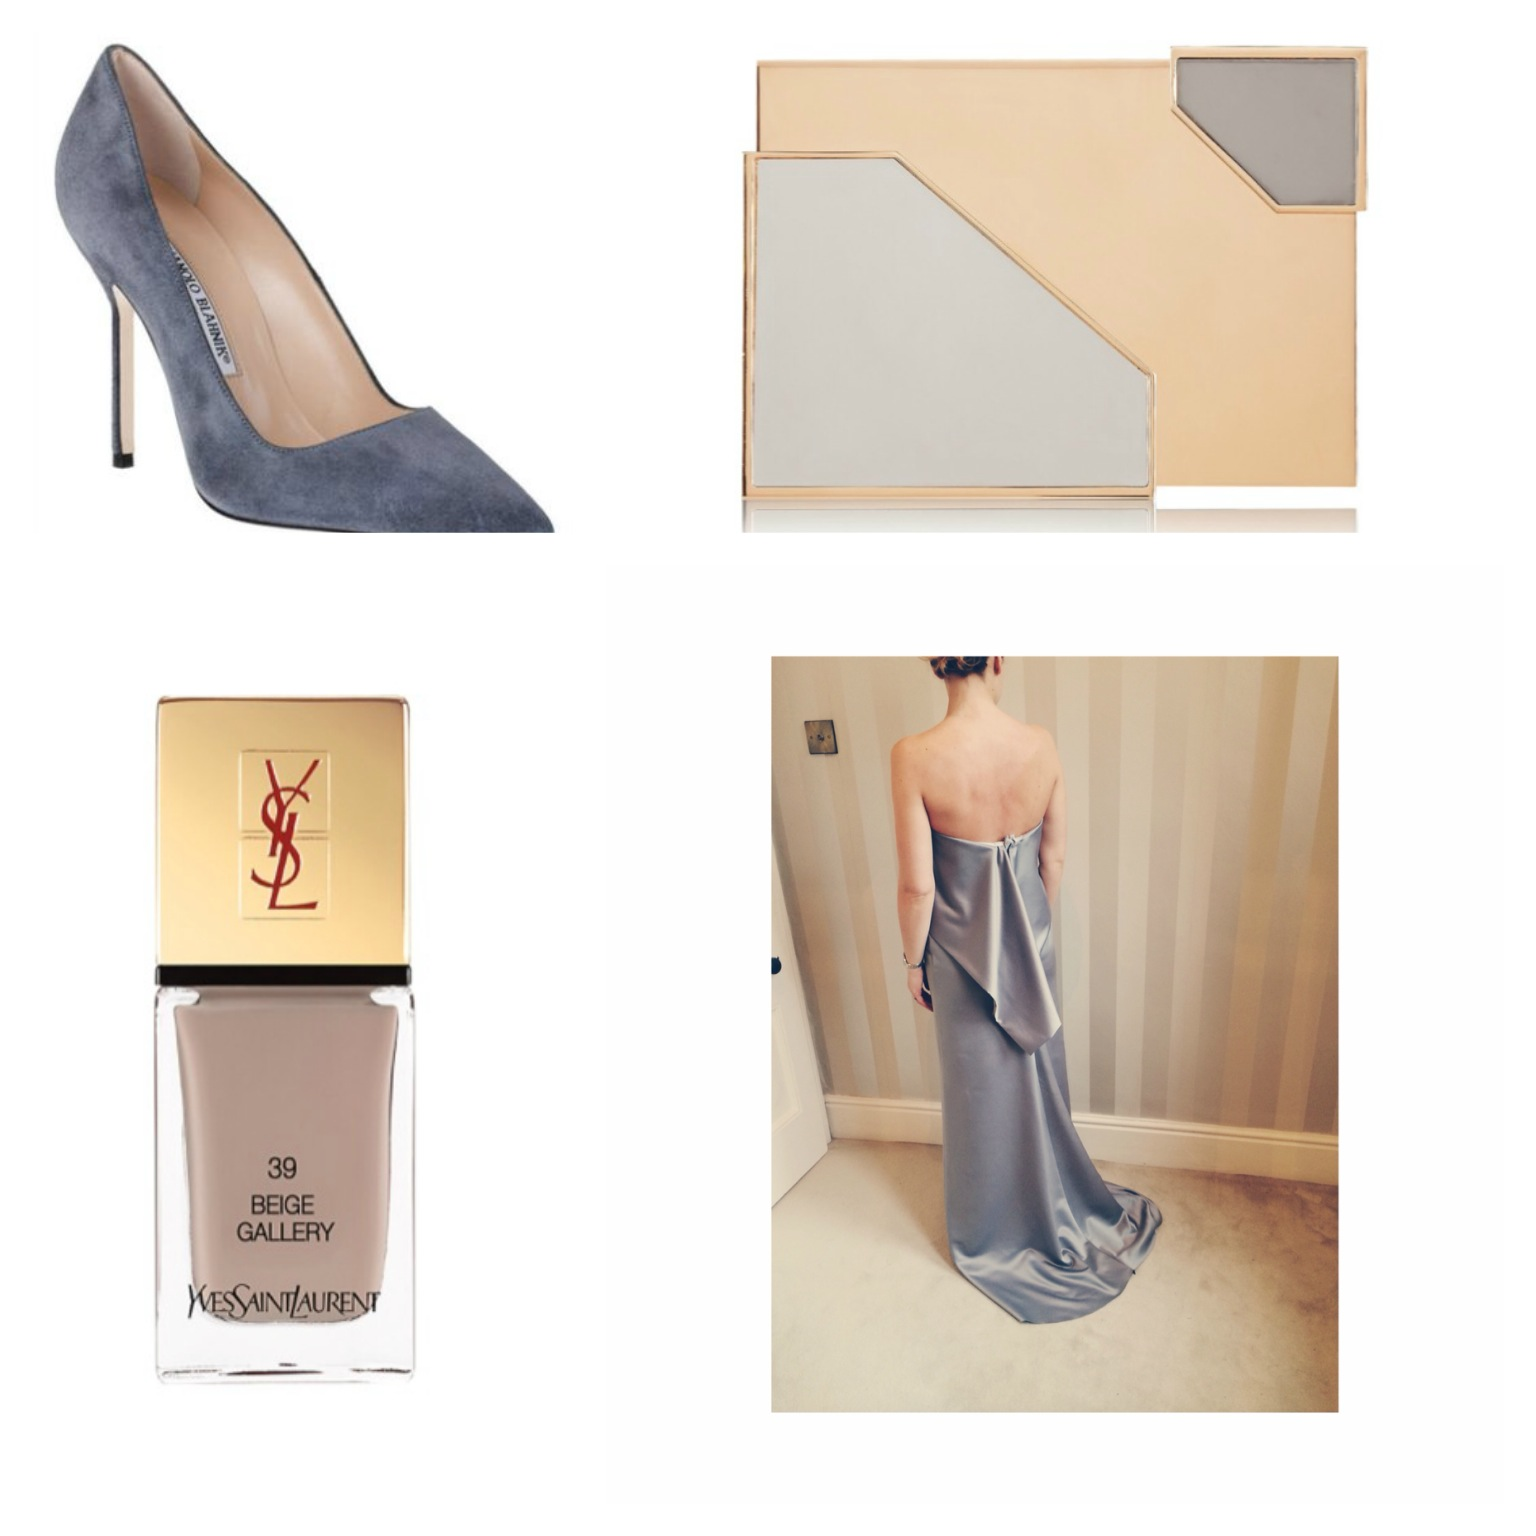 The perfect styling companions- YSL nail polish, Manolo Blahnik suede pumps, Lee Savage box clutch @ Net-a-porter